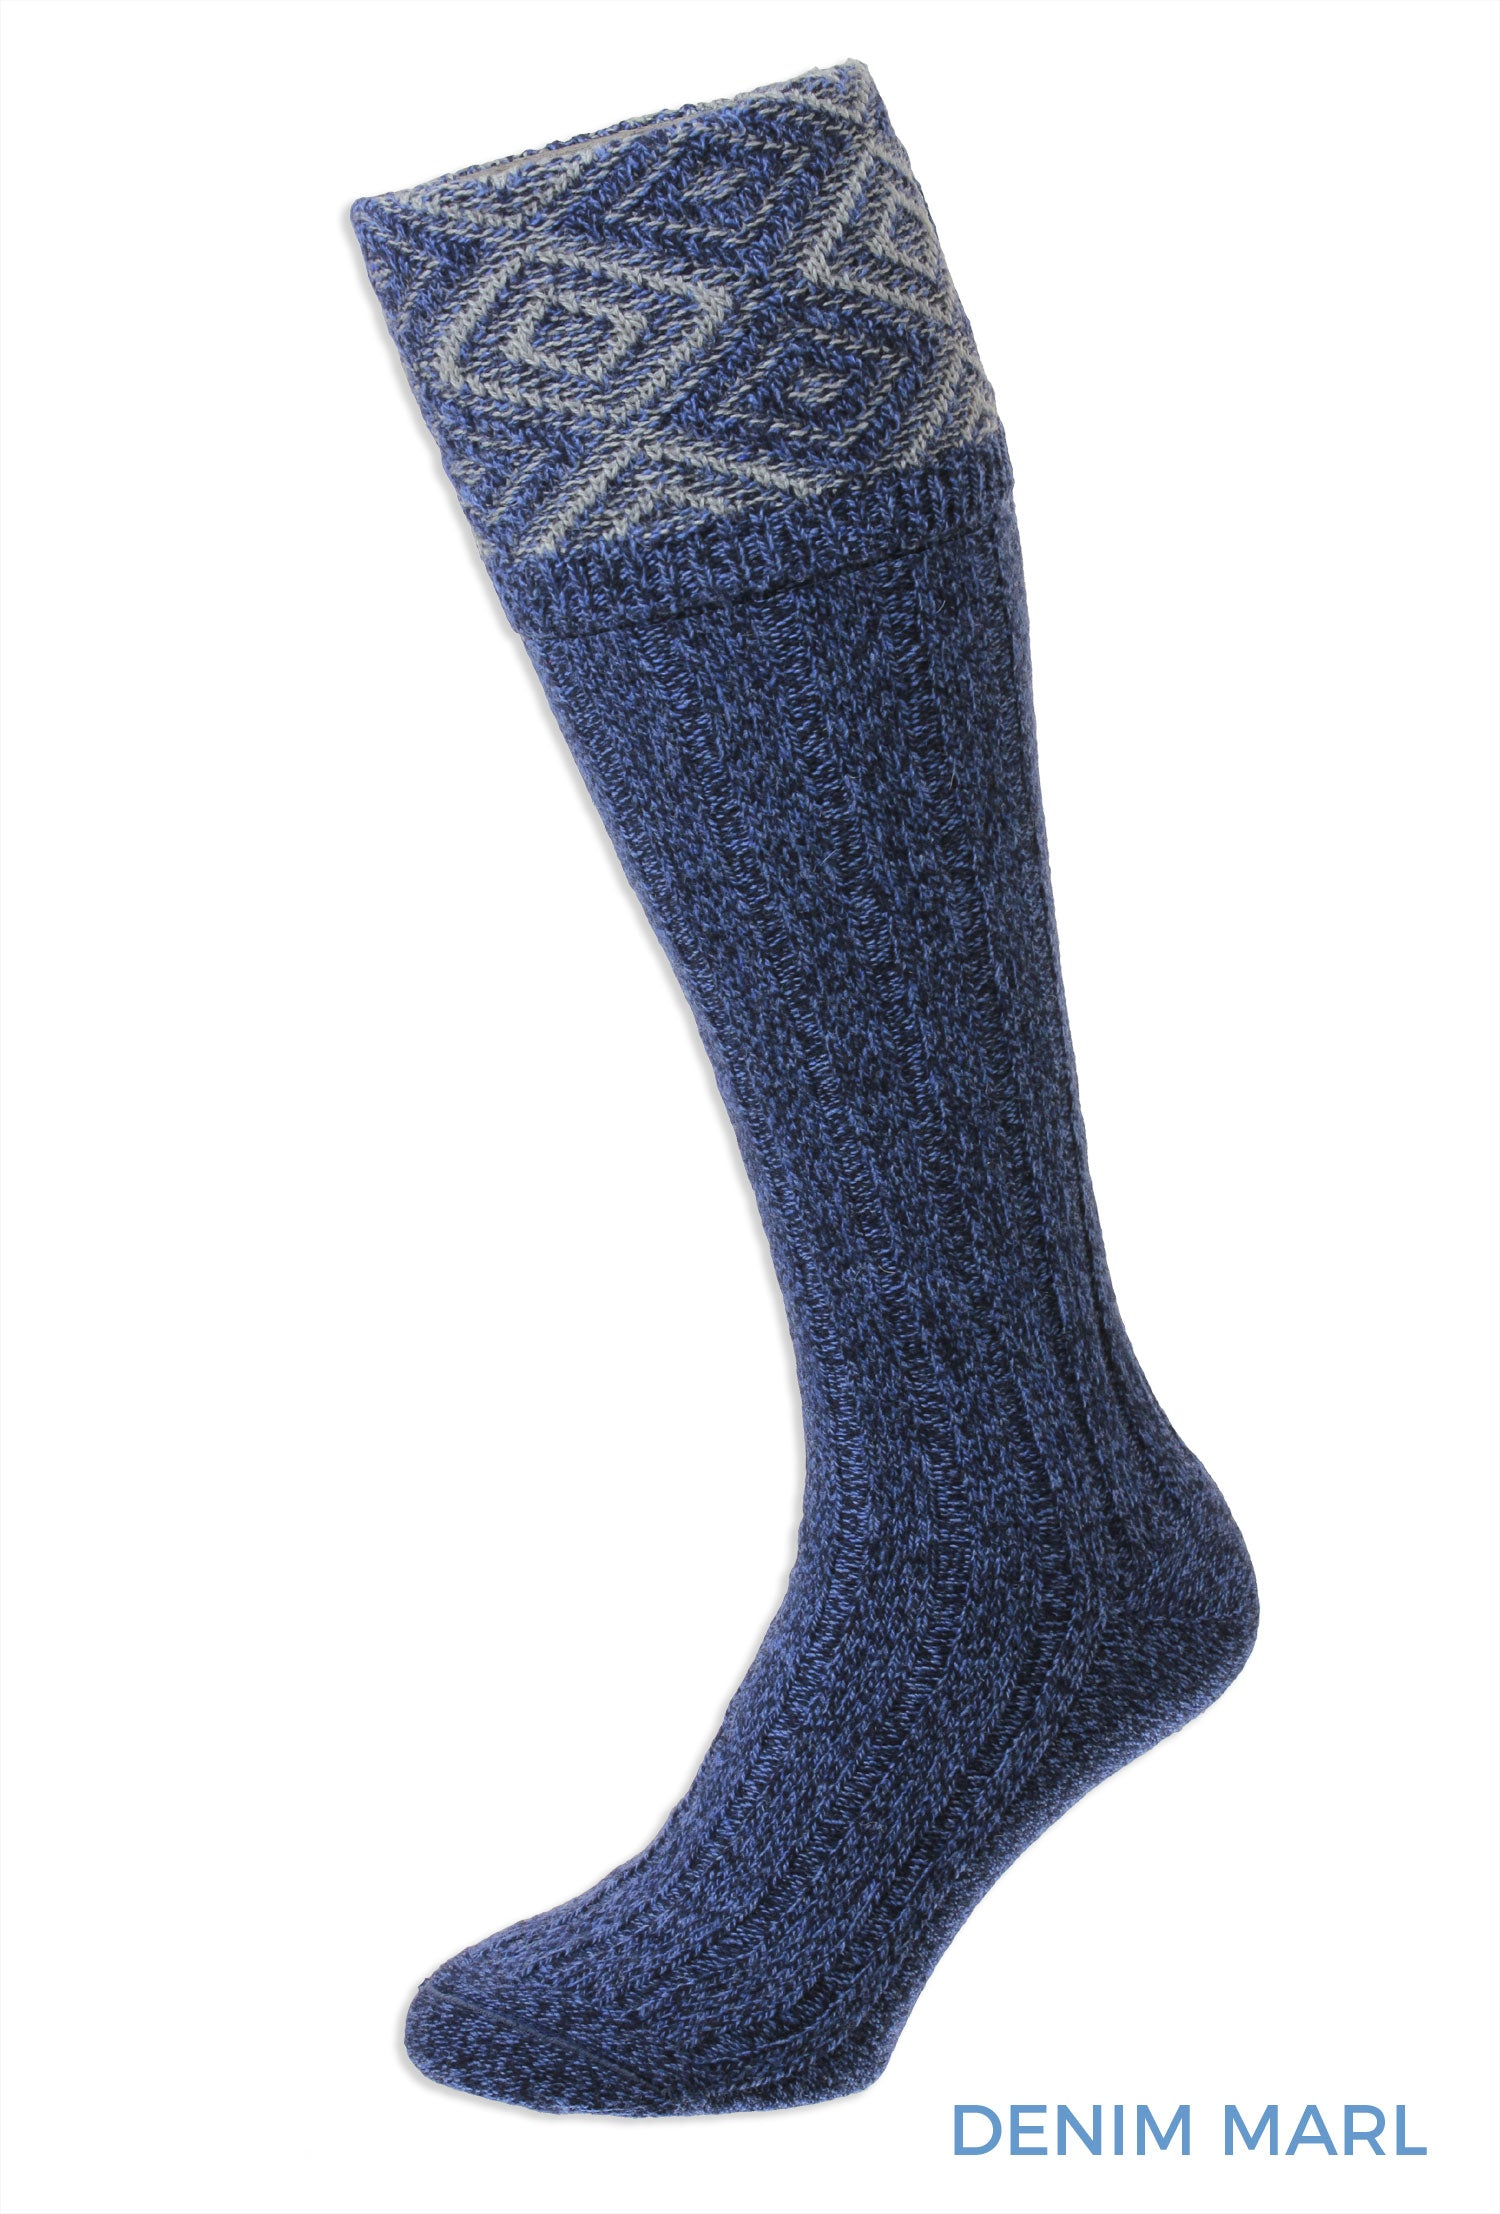 denim blue Diamond Textured Top Shooting Sock by HJ Hall